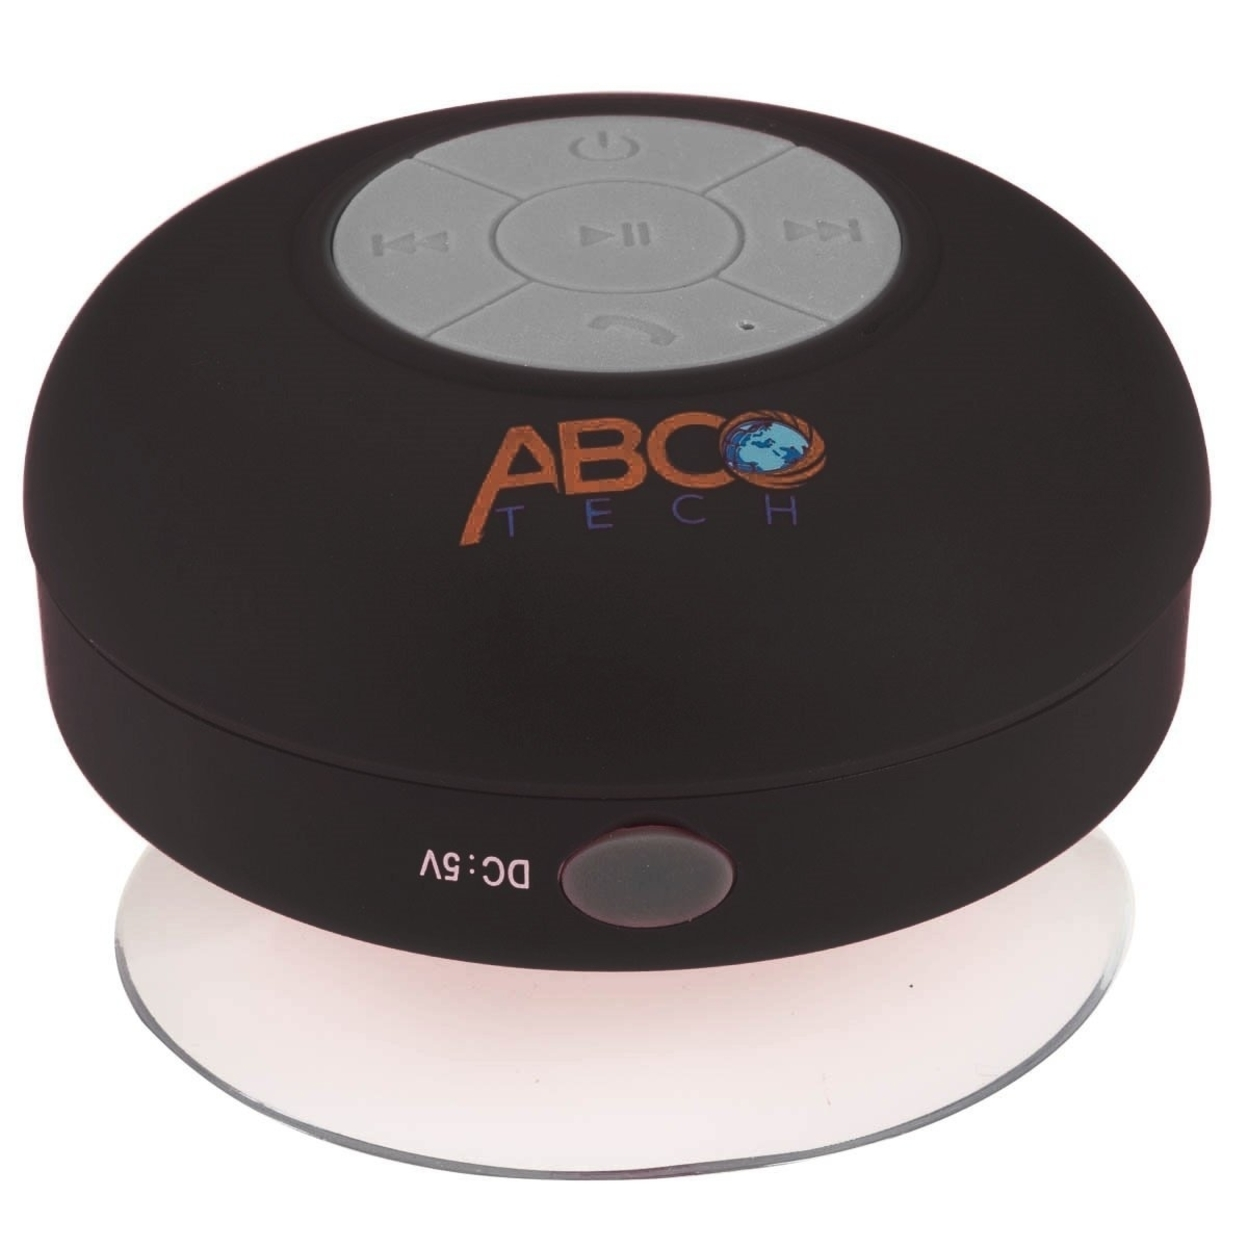 Abco Tech Water Resistant Wireless Bluetooth Shower Speaker with Suction Cup and Hands-Free Speakerphone - black 572b99c6aa3d6f0d218b45ab